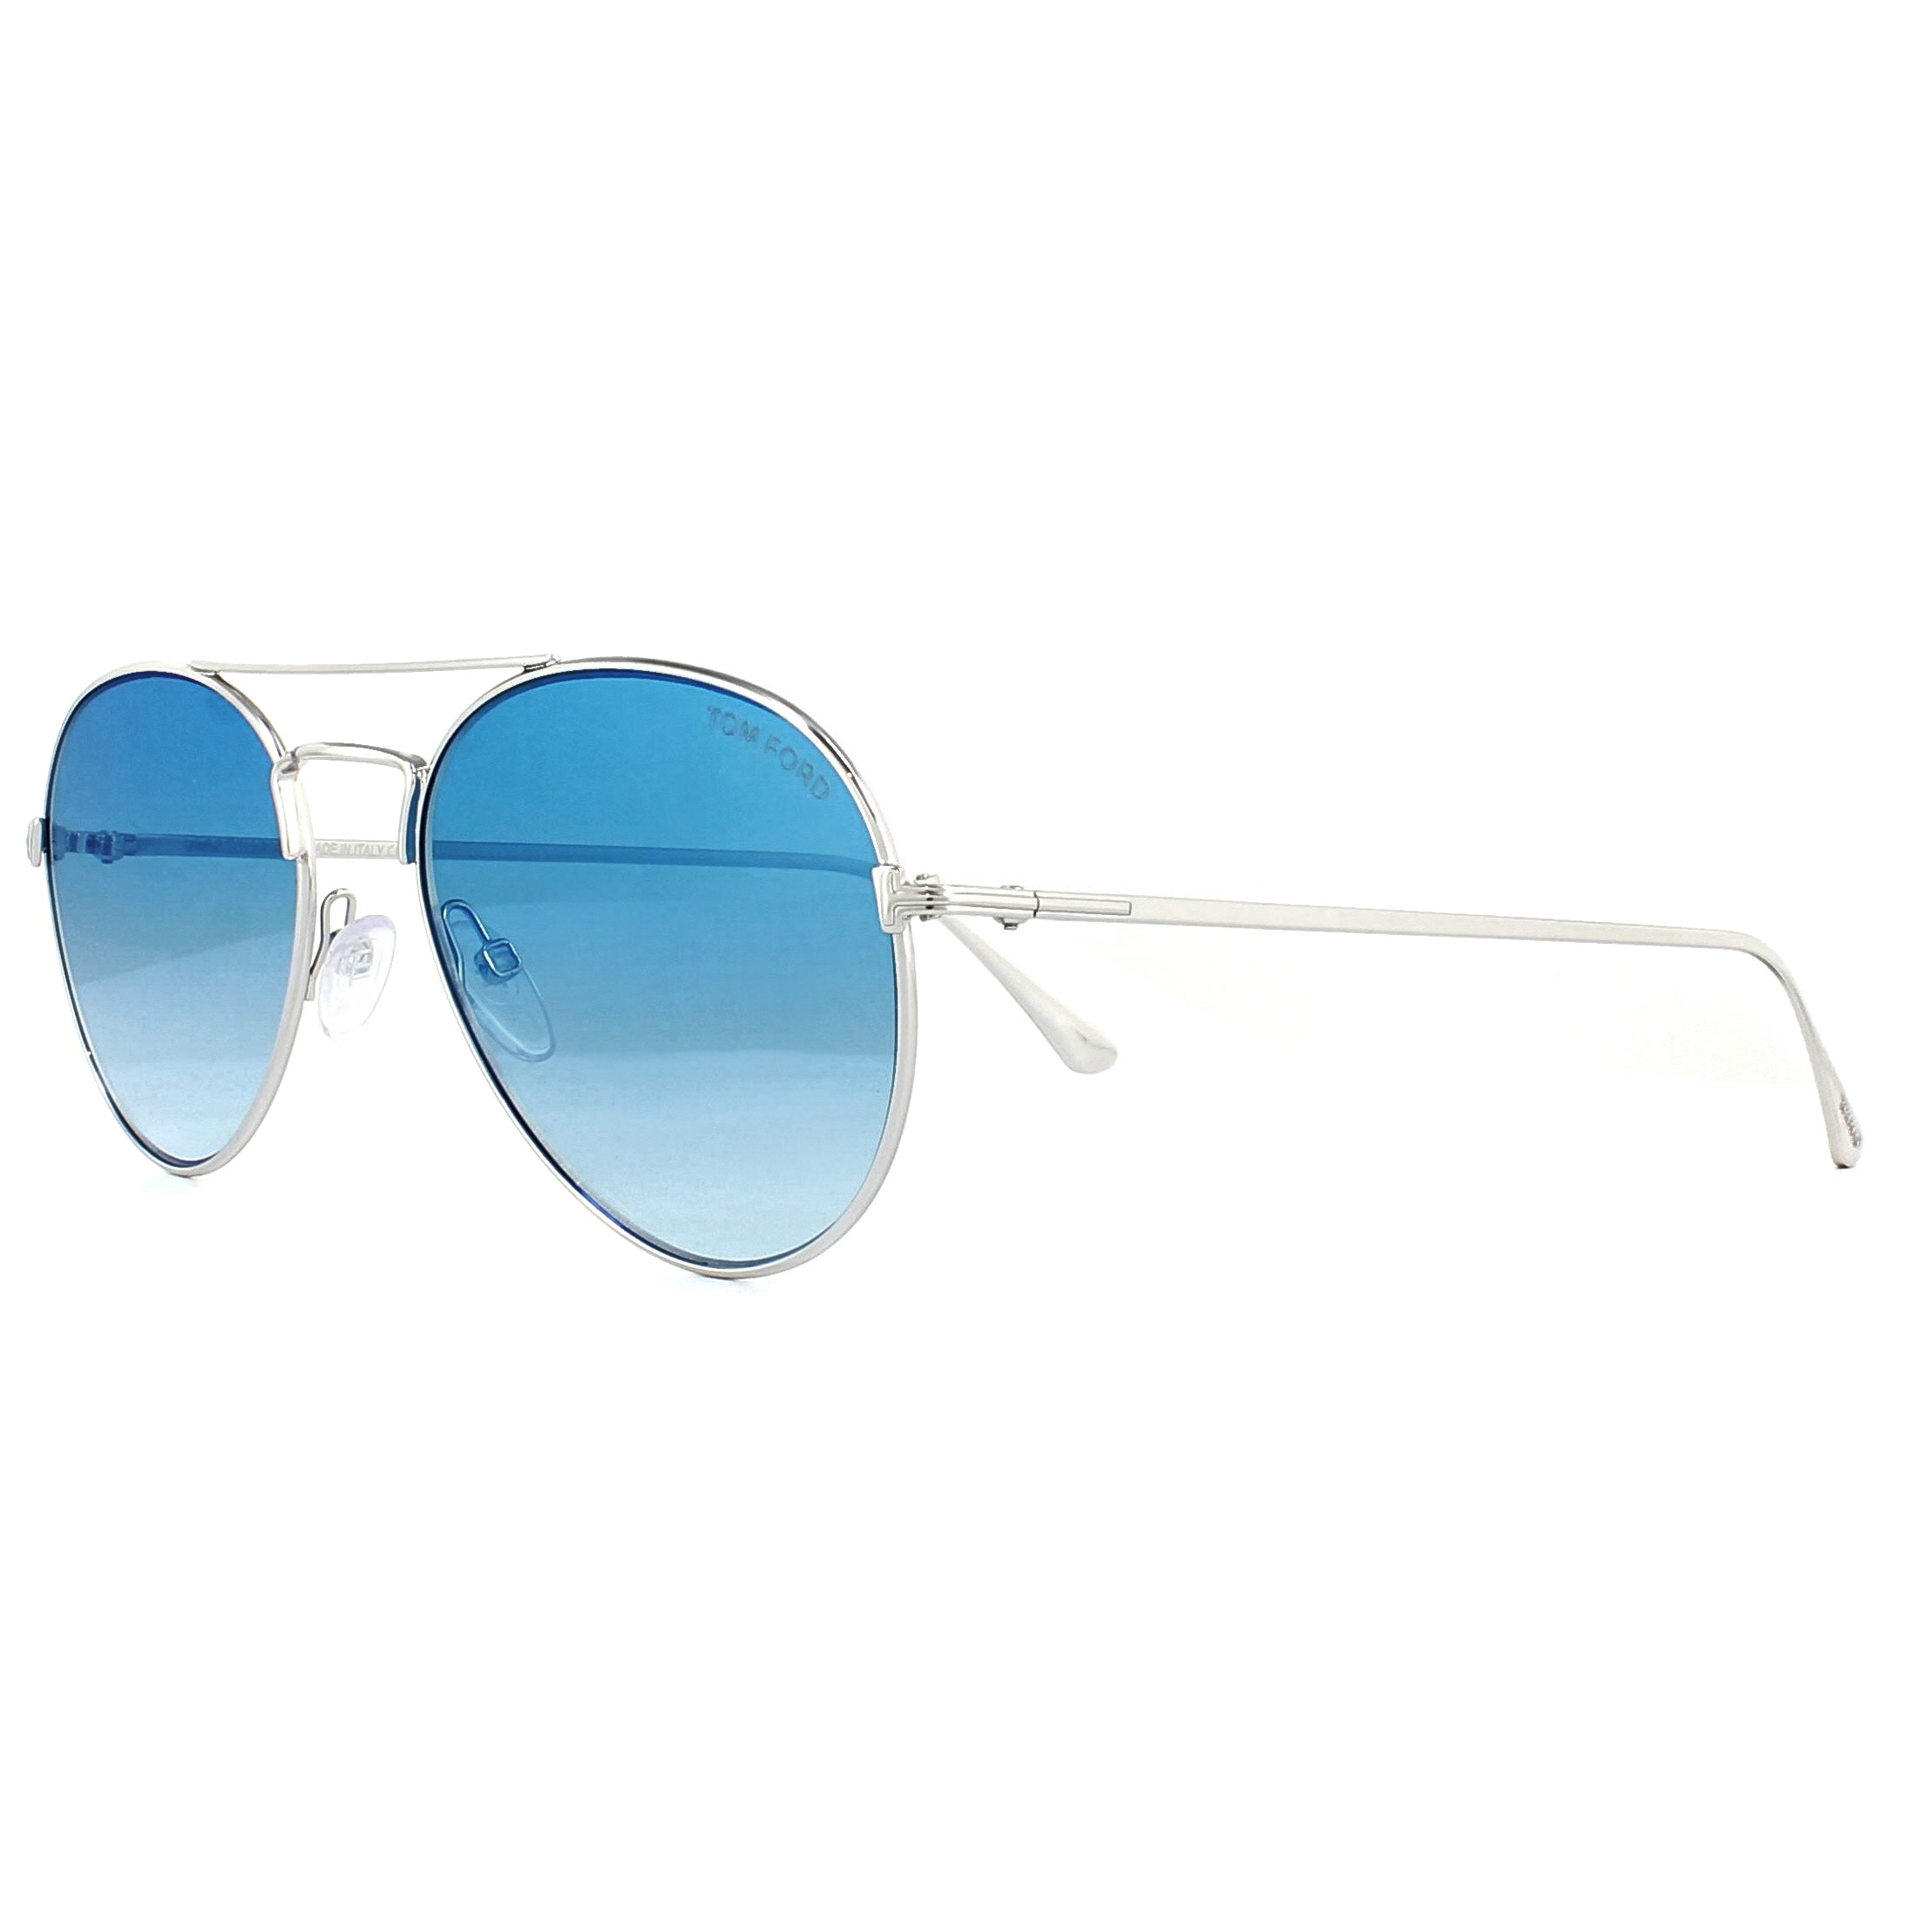 ce02c68cce5b Sentinel Tom Ford Sunglasses 0551 Ace 18X Shiny Rhodium Blue Mirror